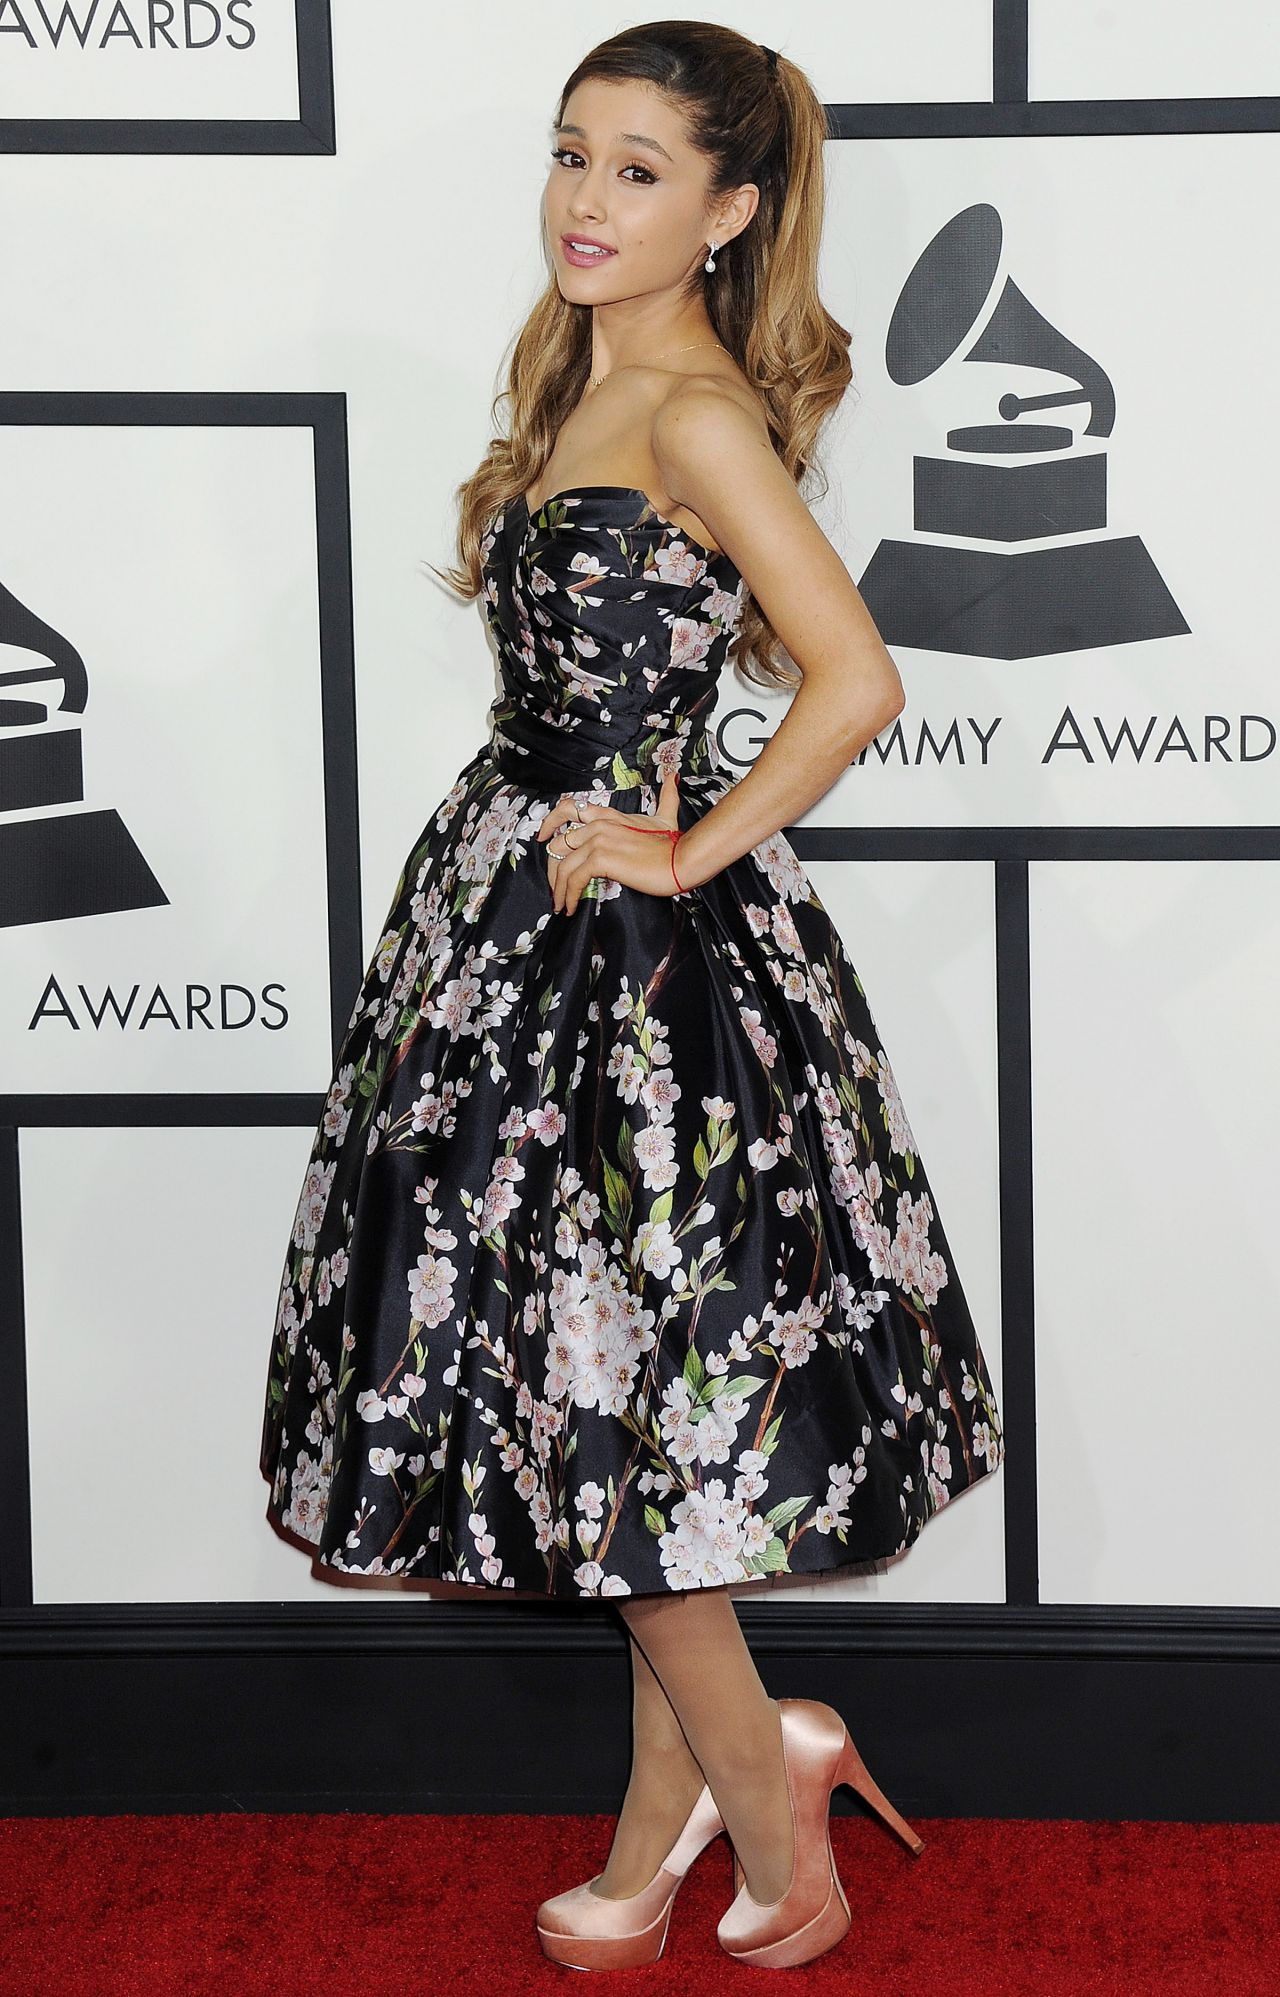 Ariana Grande - 2014 Grammy Awards